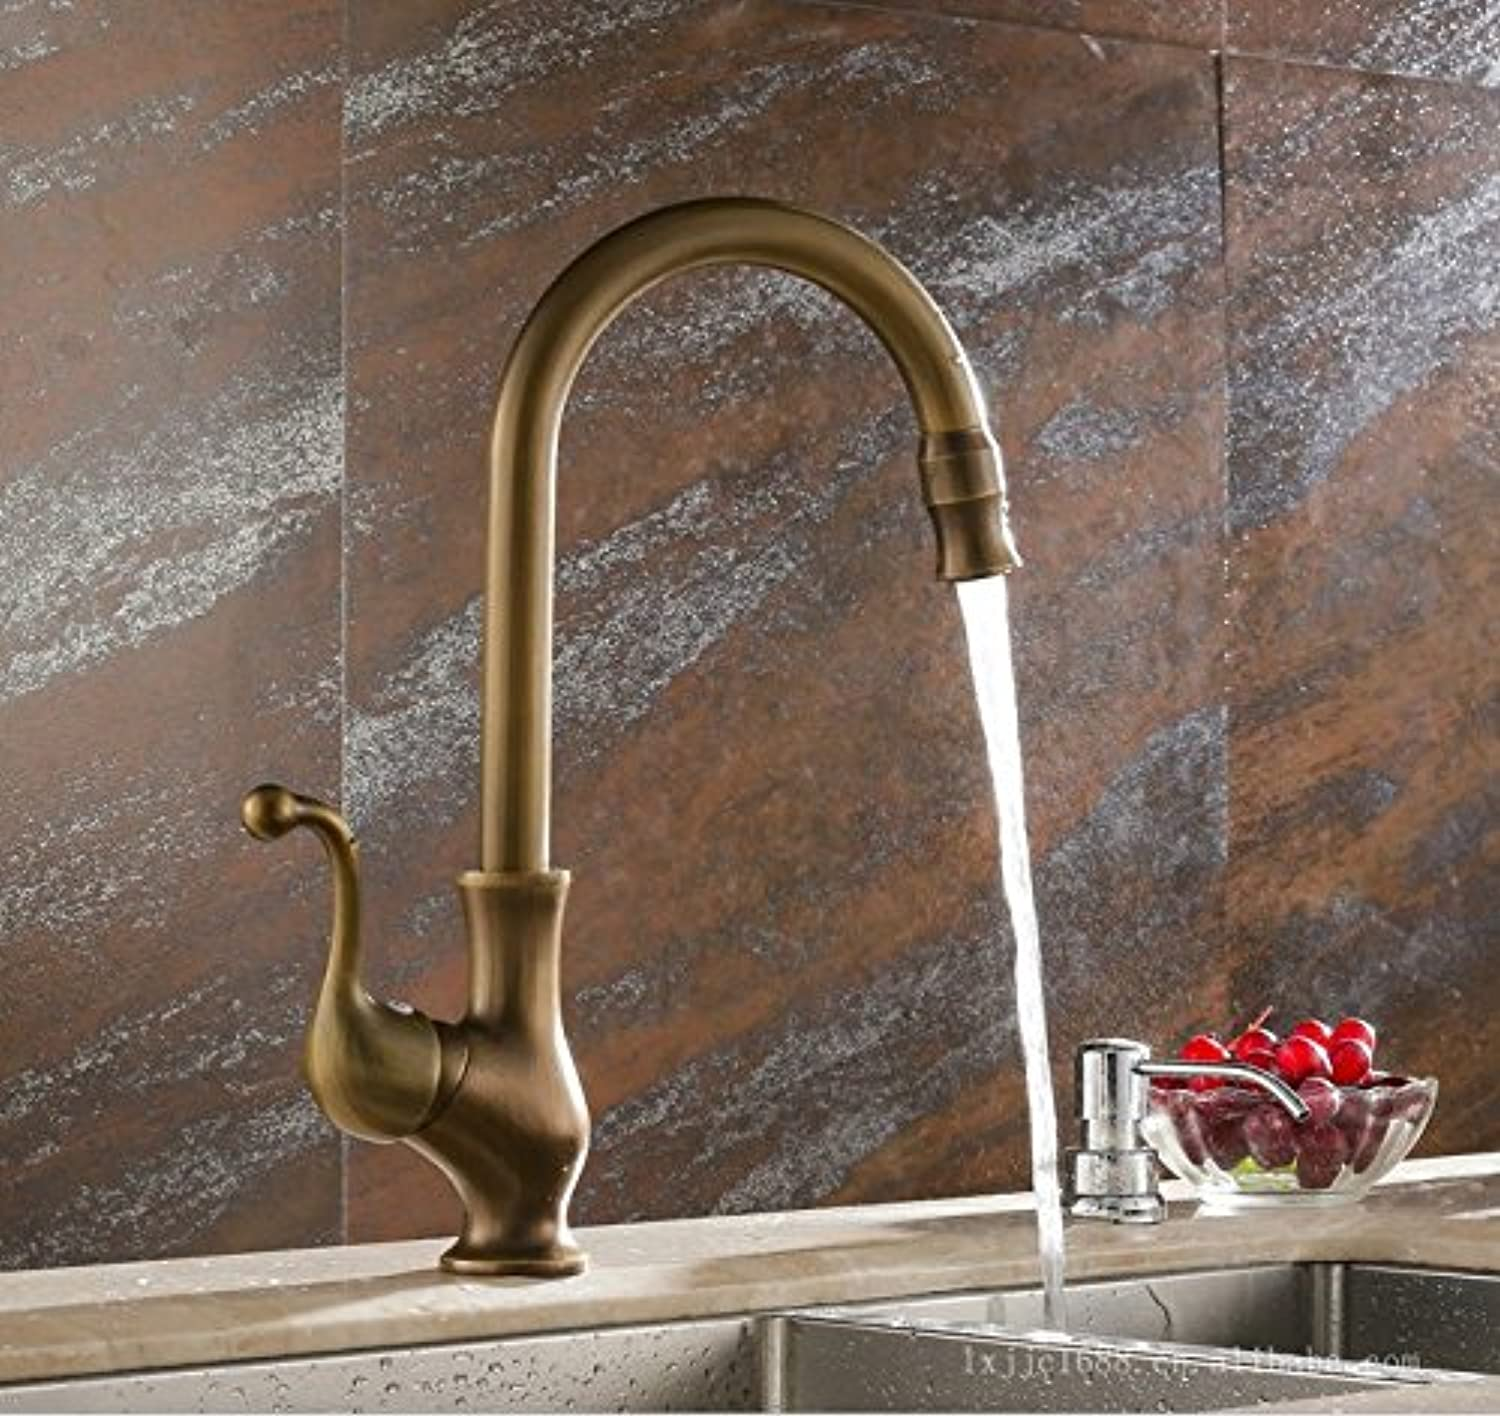 Mangeoo Faucet Kitchen Faucet, All Copper Antique Hot And Cold Water Tank Faucet, European 360 Degree Swivel Washing Vegetable Basin Faucet.